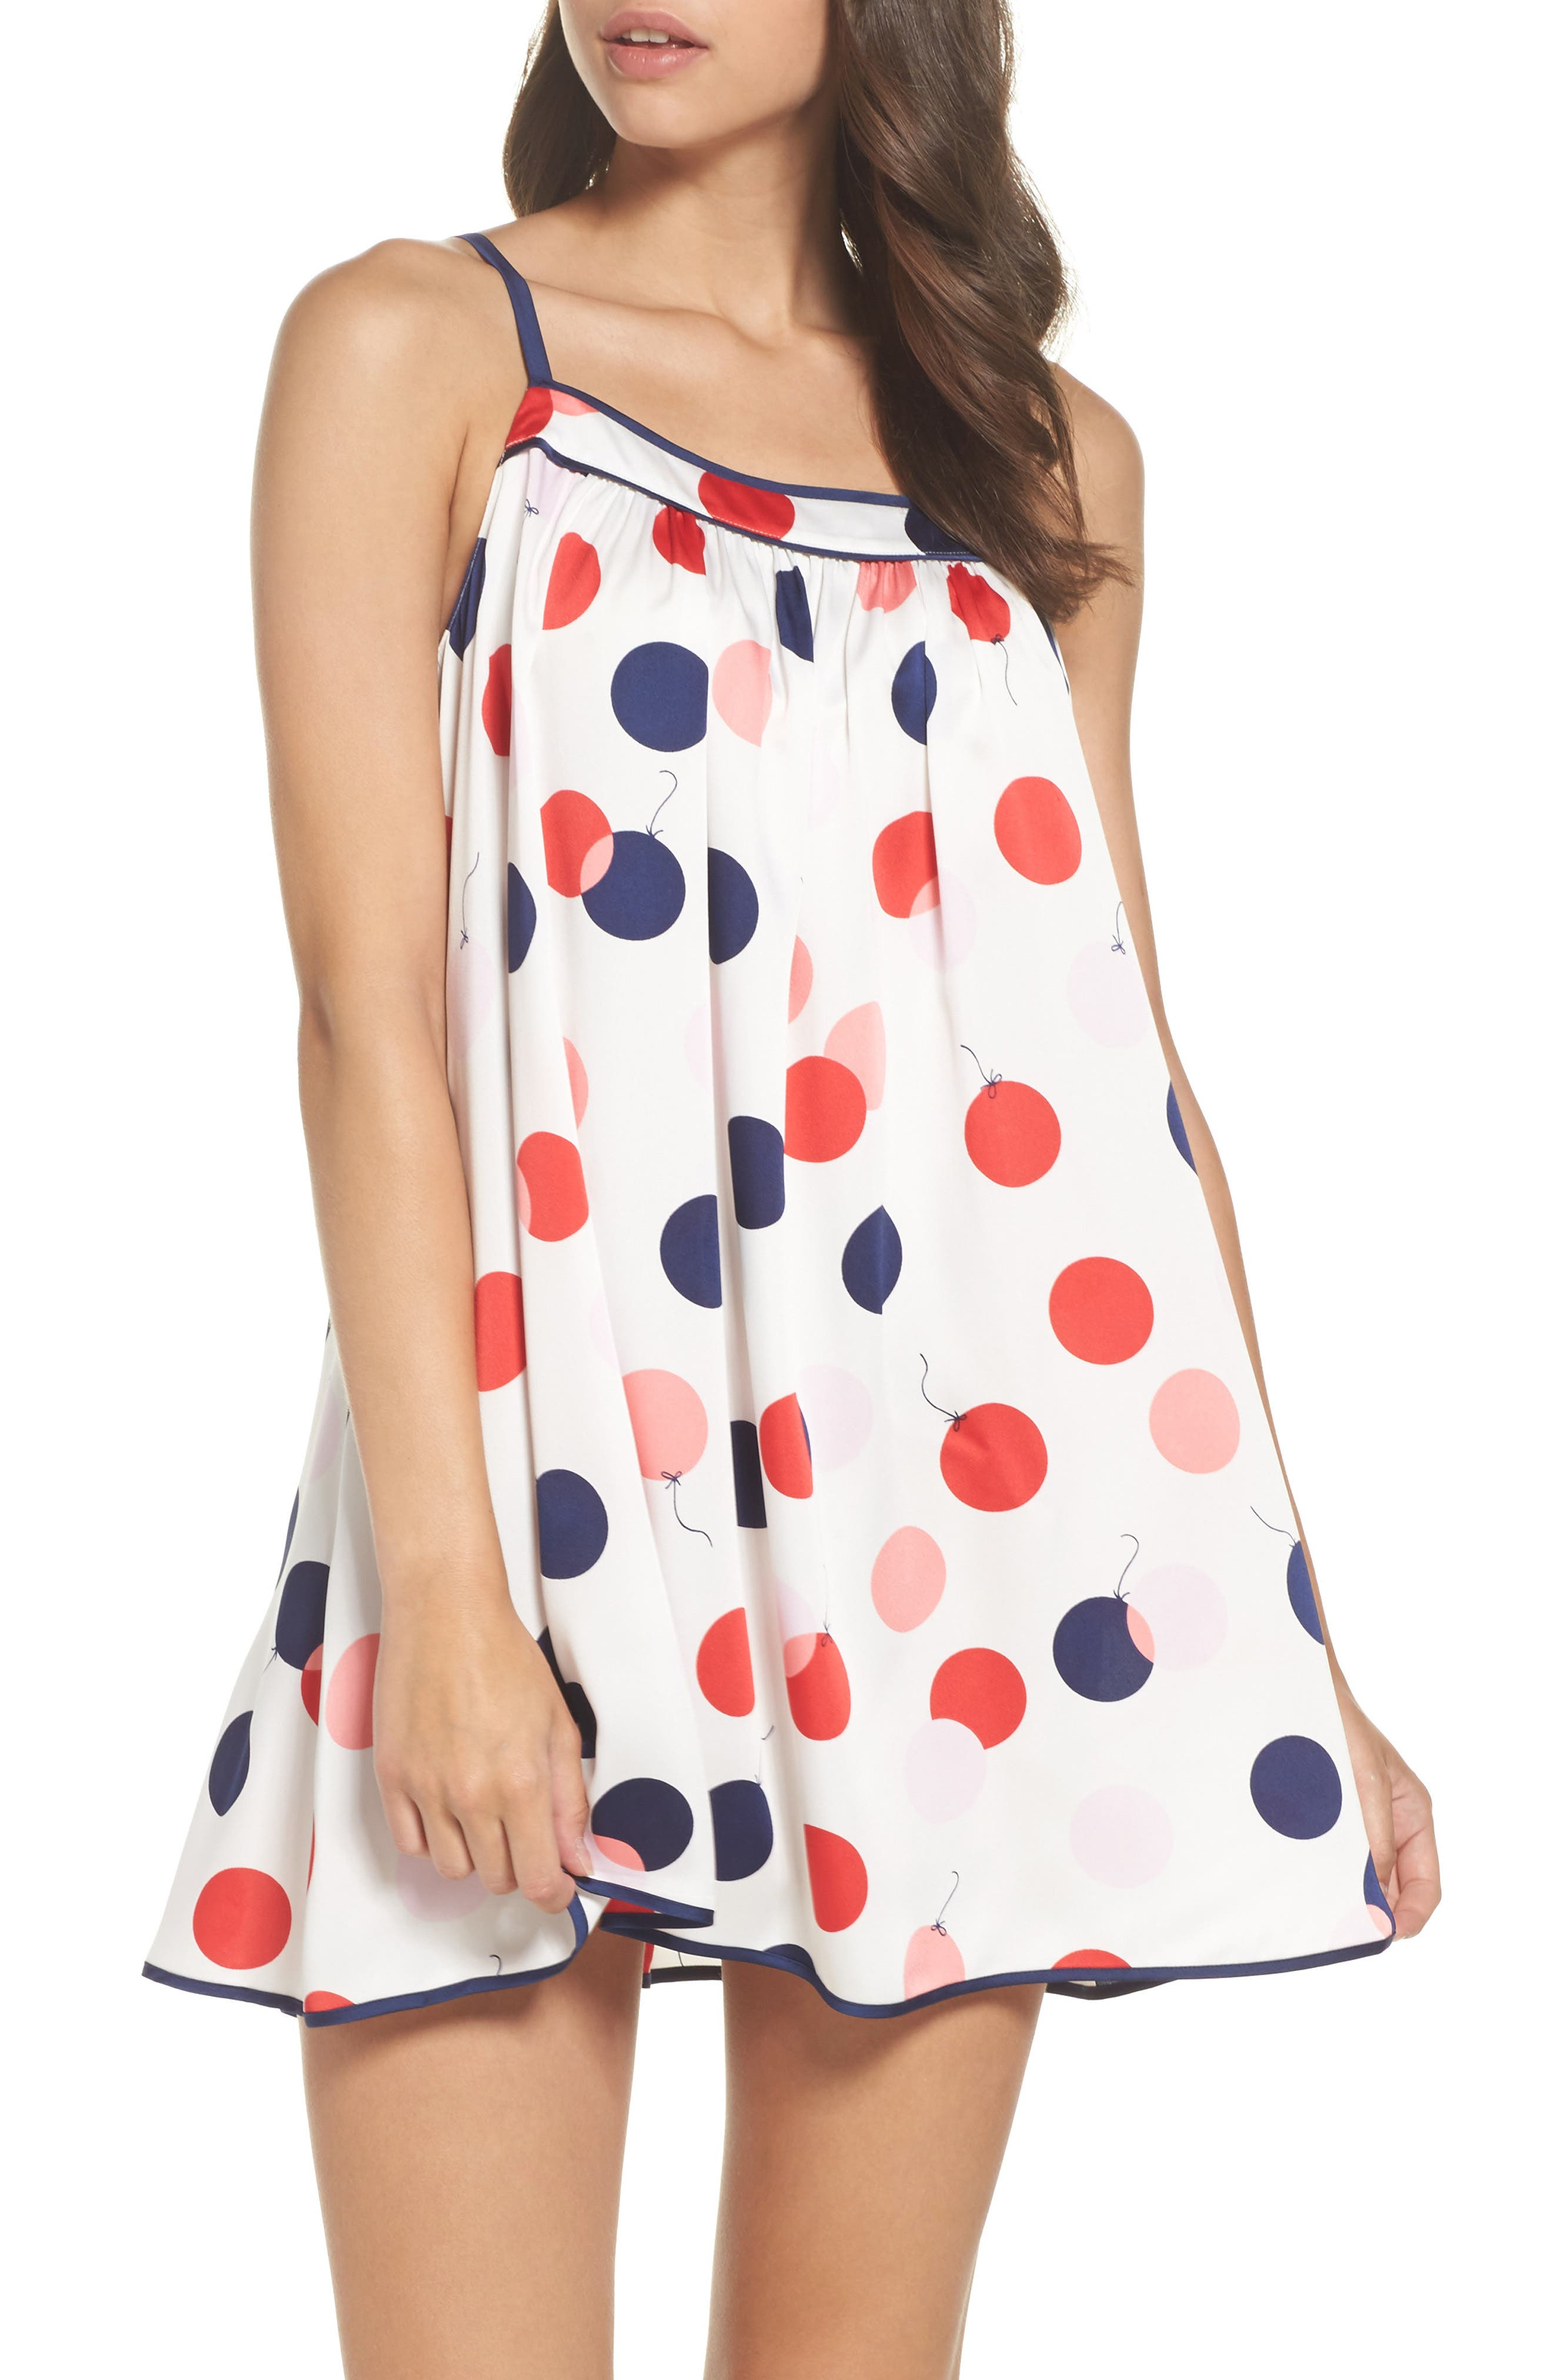 charmeuse chemise,                         Main,                         color, White/ Red